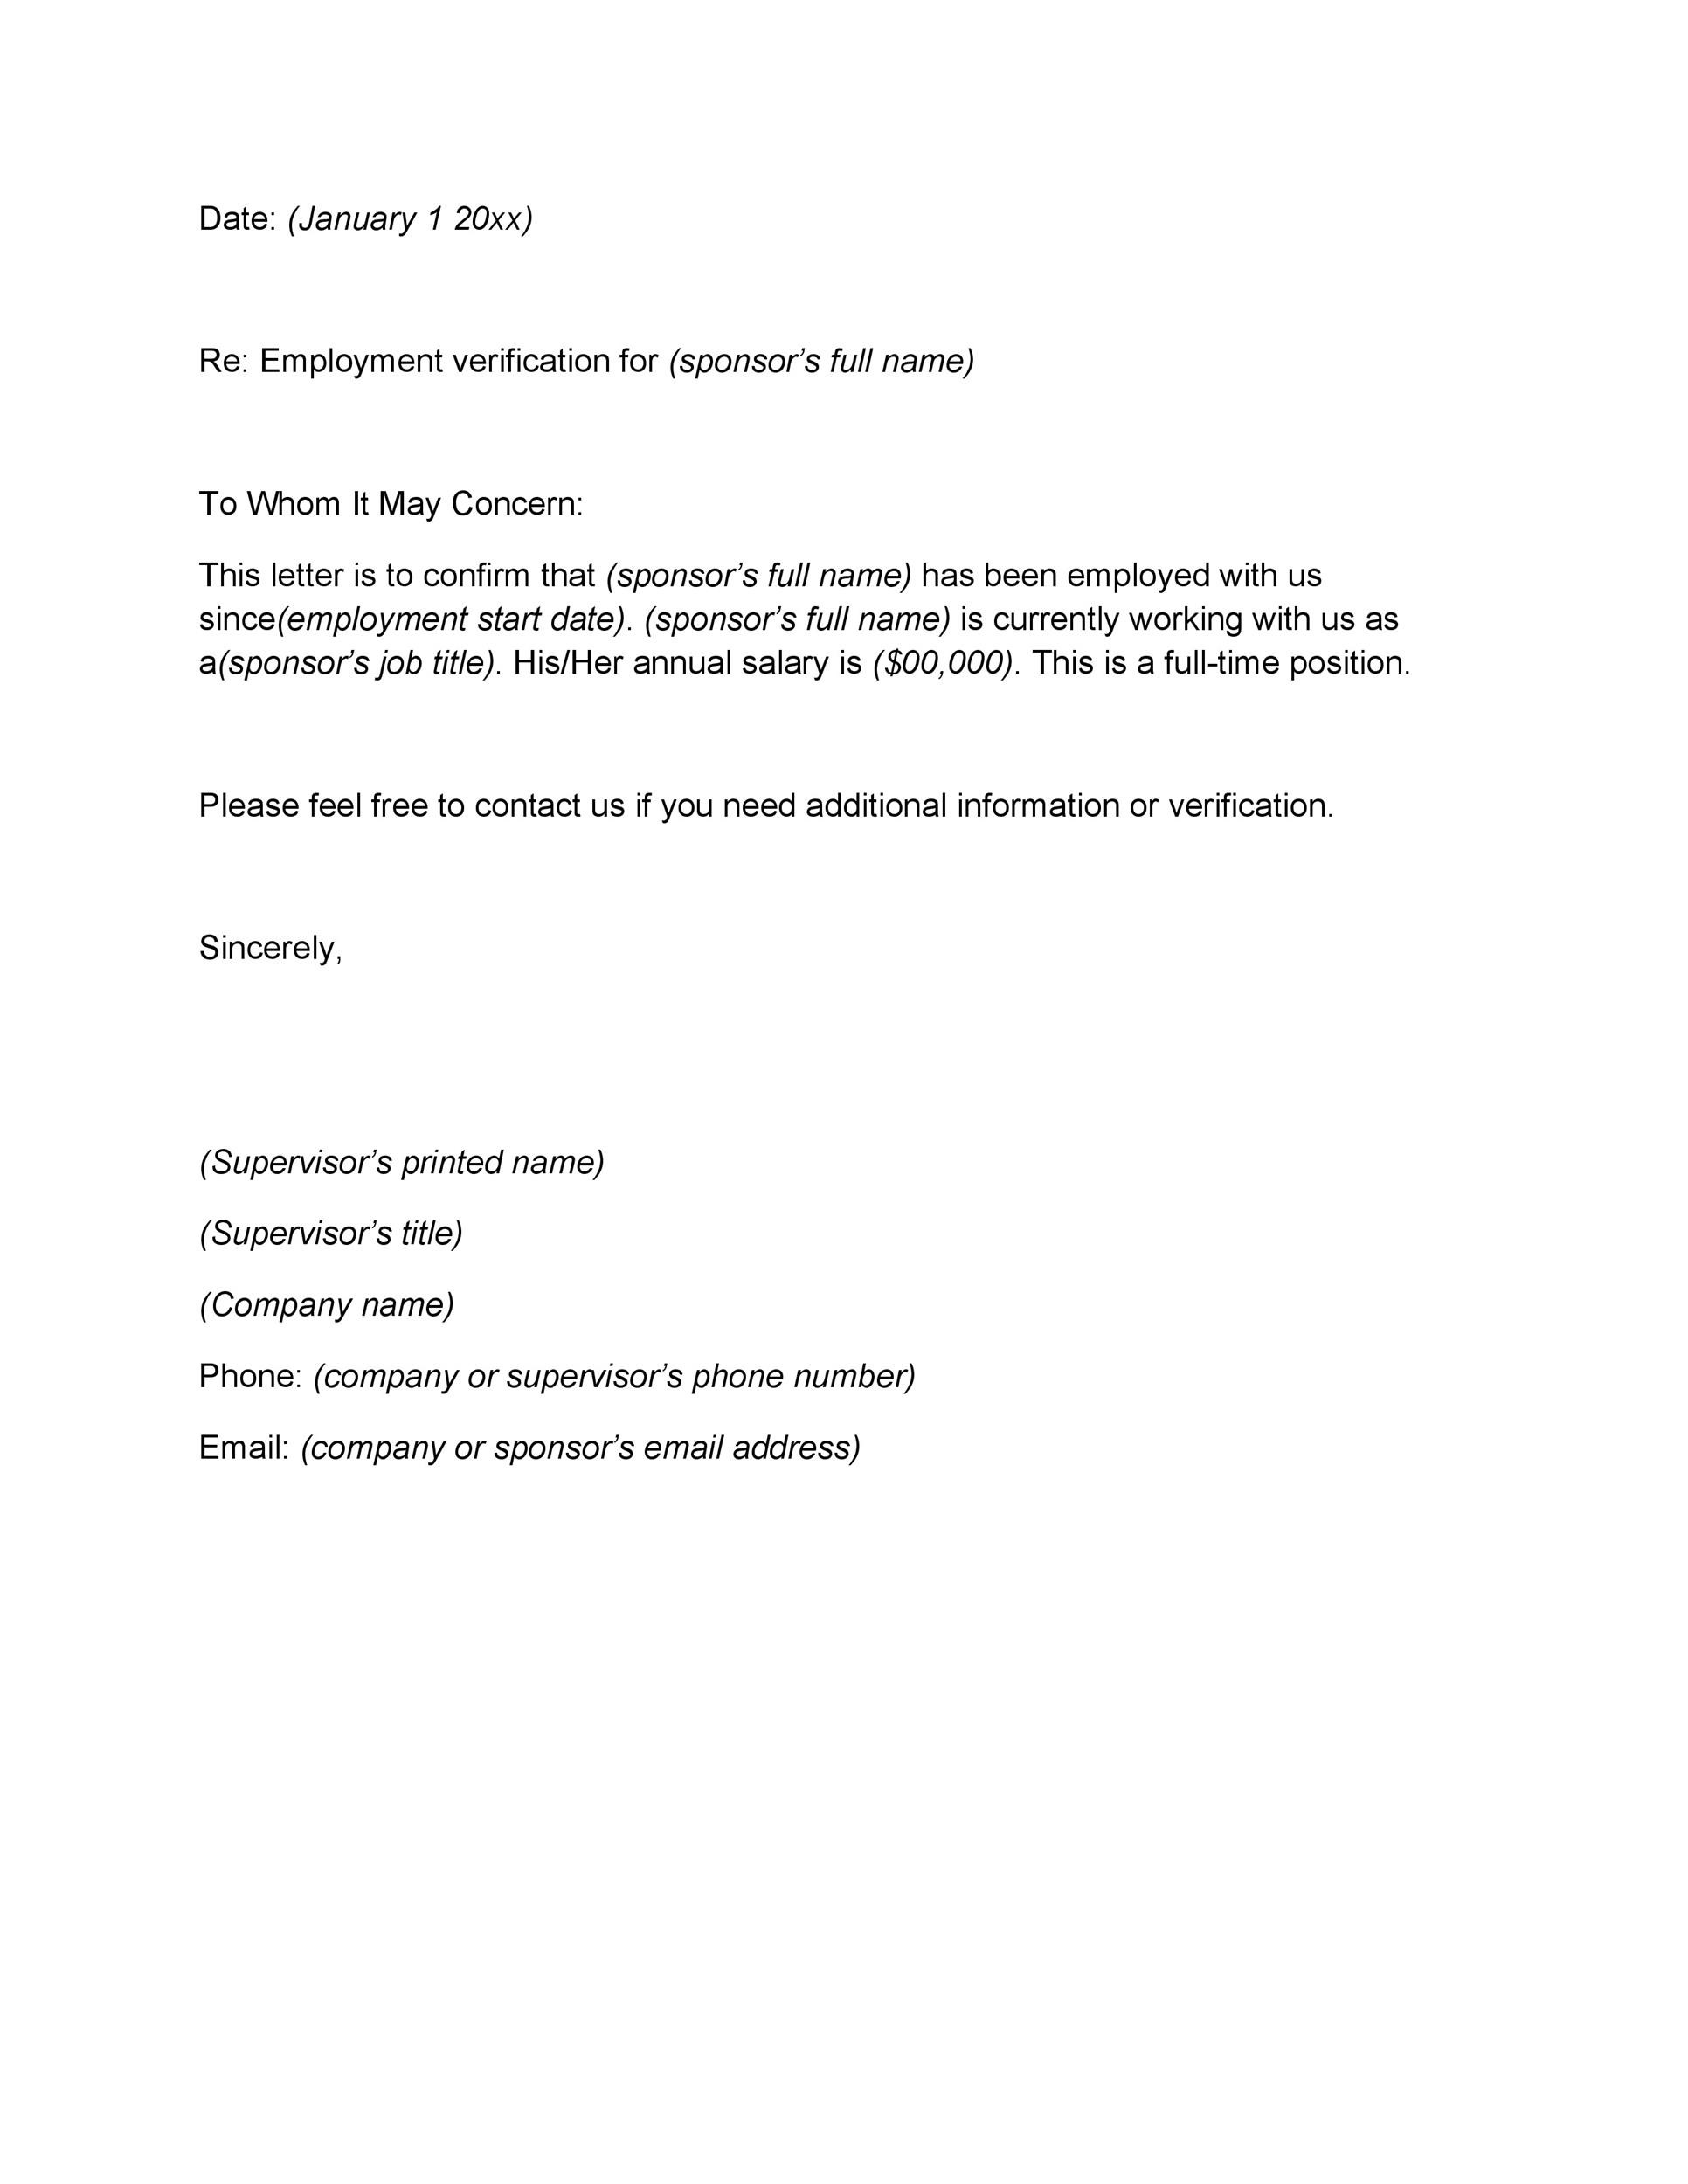 Template Employment Verification Letter from templatelab.com